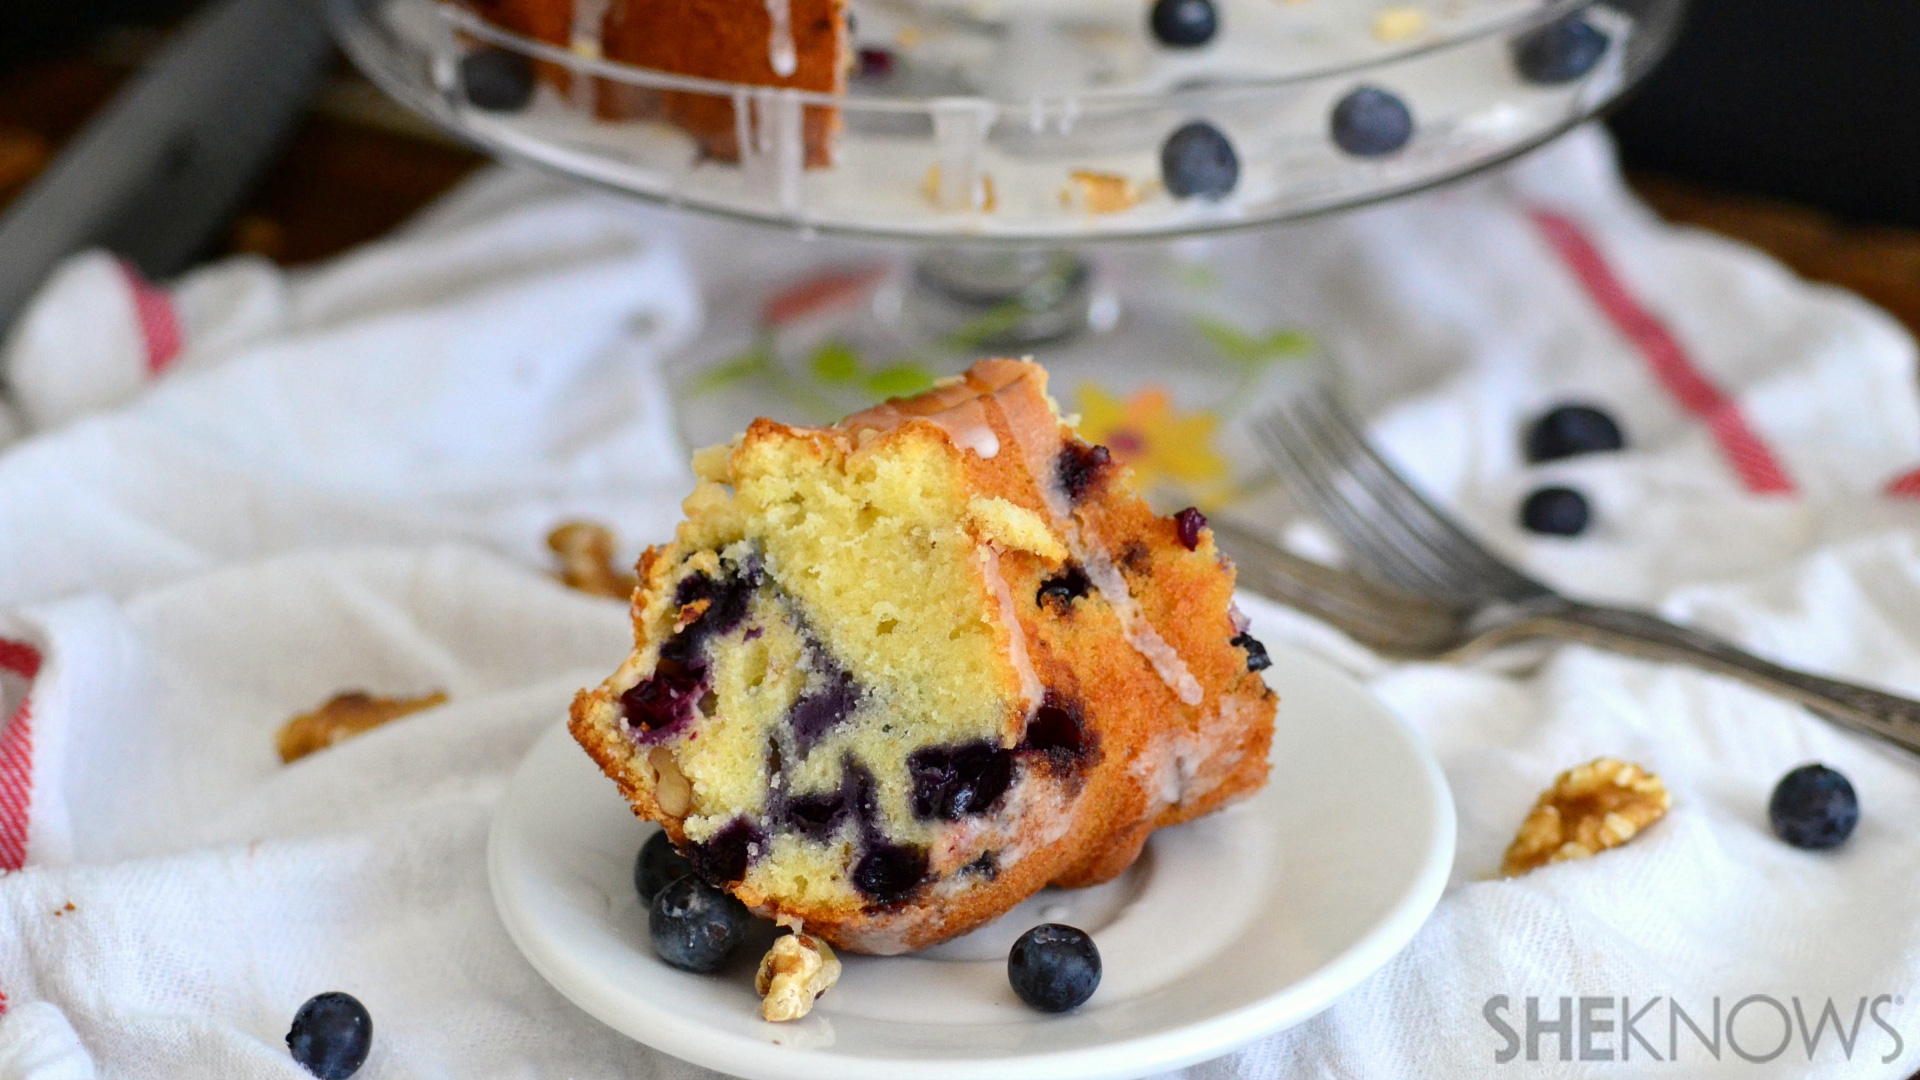 Blueberry beer and brown butter bundt cake